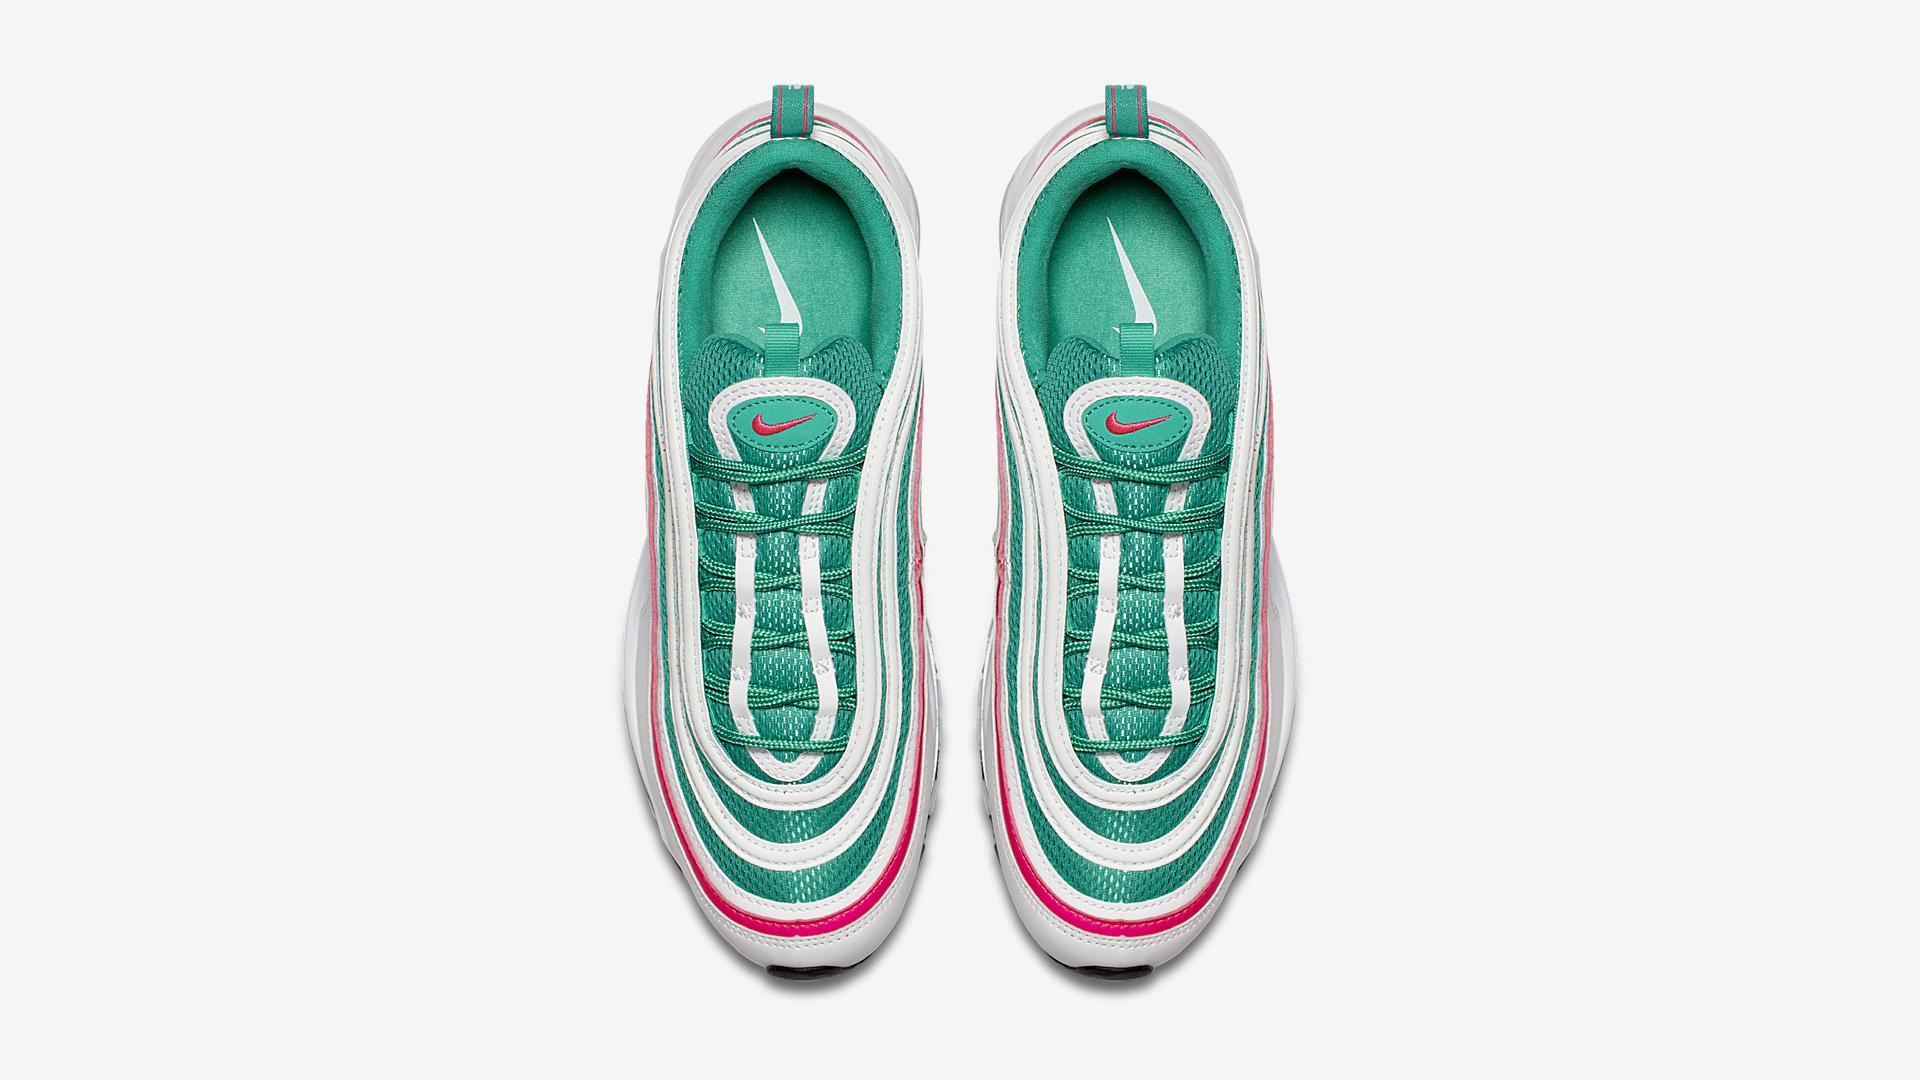 921826 102 Nike Air Max 97 Watermelon 3